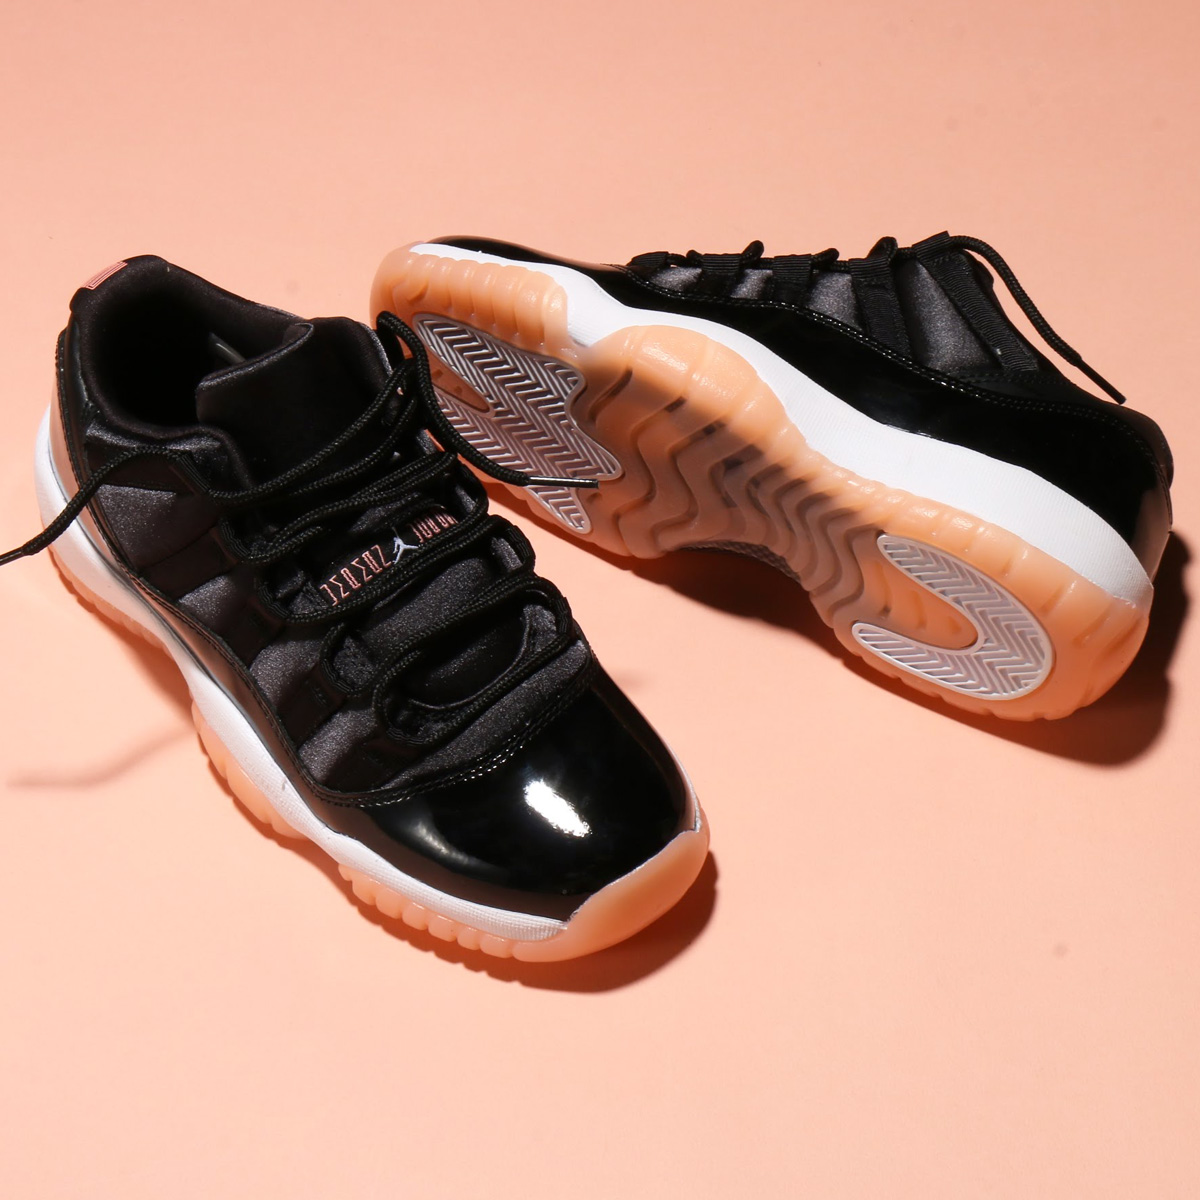 bf00eaa5f370c ... nike air jordan 11 retro low gg nike air jordan 11 nostalgic low gg